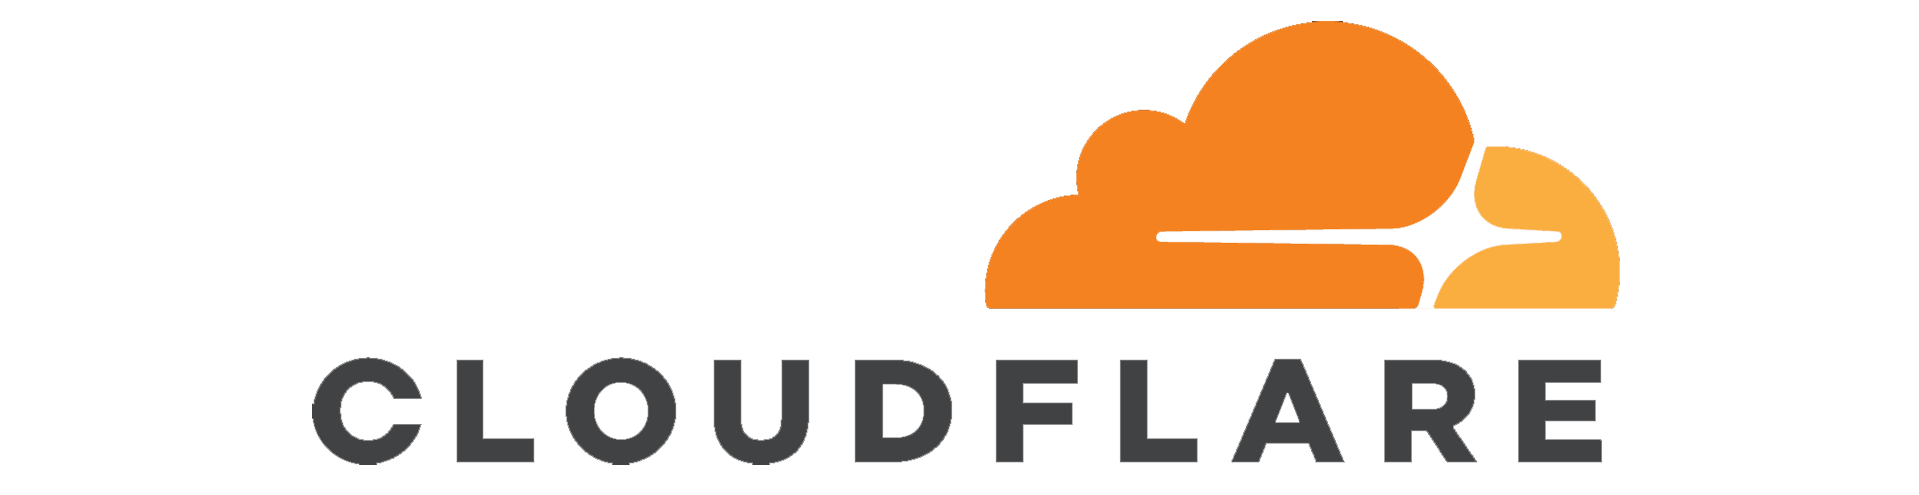 cloudflare-homeLogo_PM-min